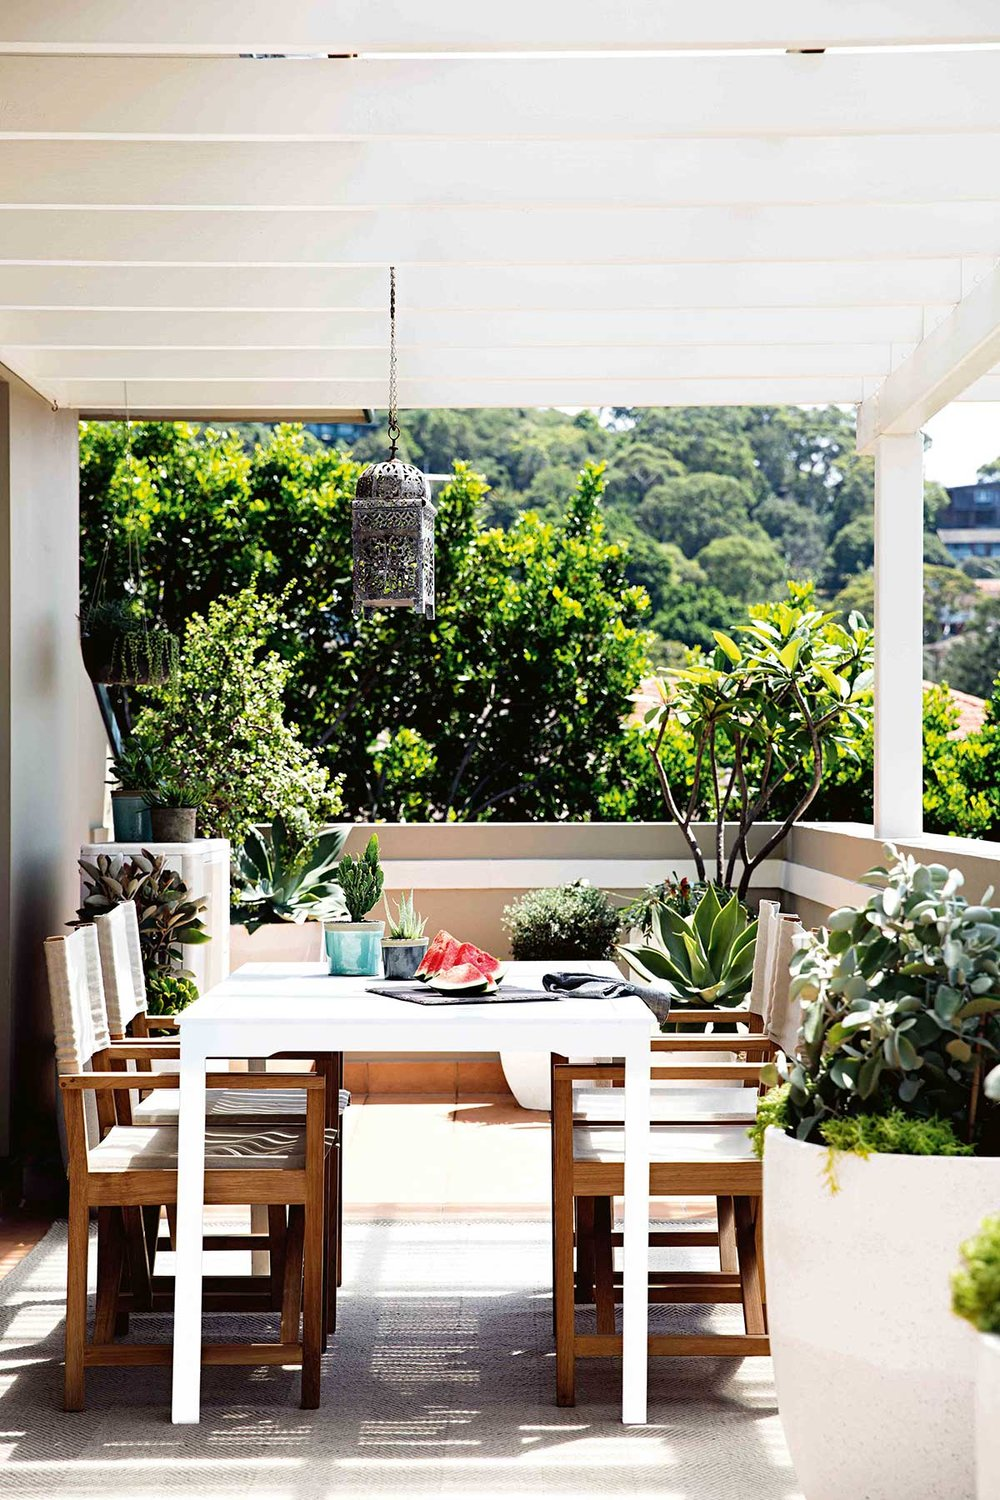 The balcony had ample space for formal outdoor dining and a variety of pot clusters and plant selection